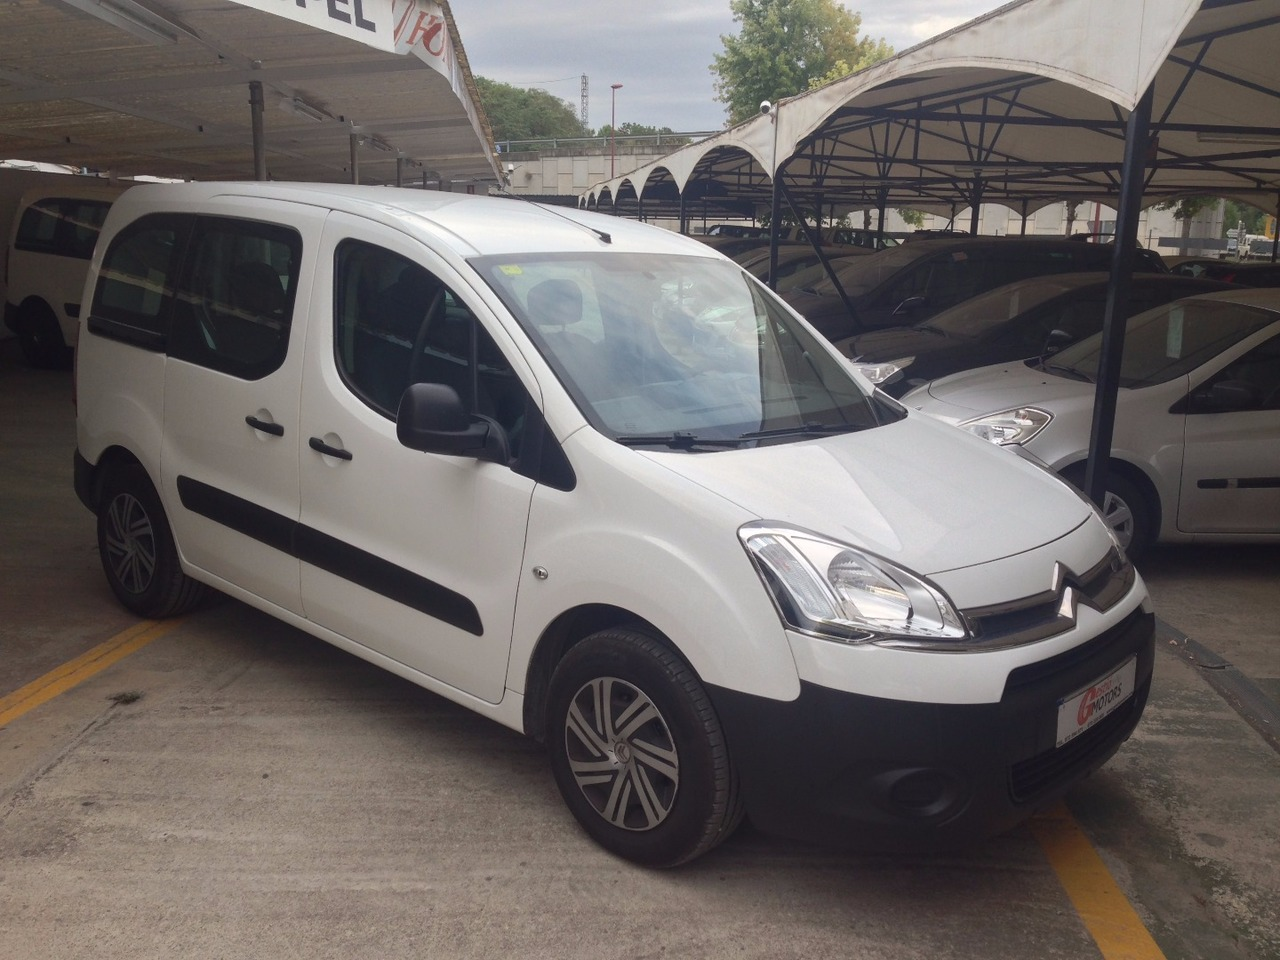 Citroën Berlingo 1.6 HDI 75 ATTRACTION   - Foto 1